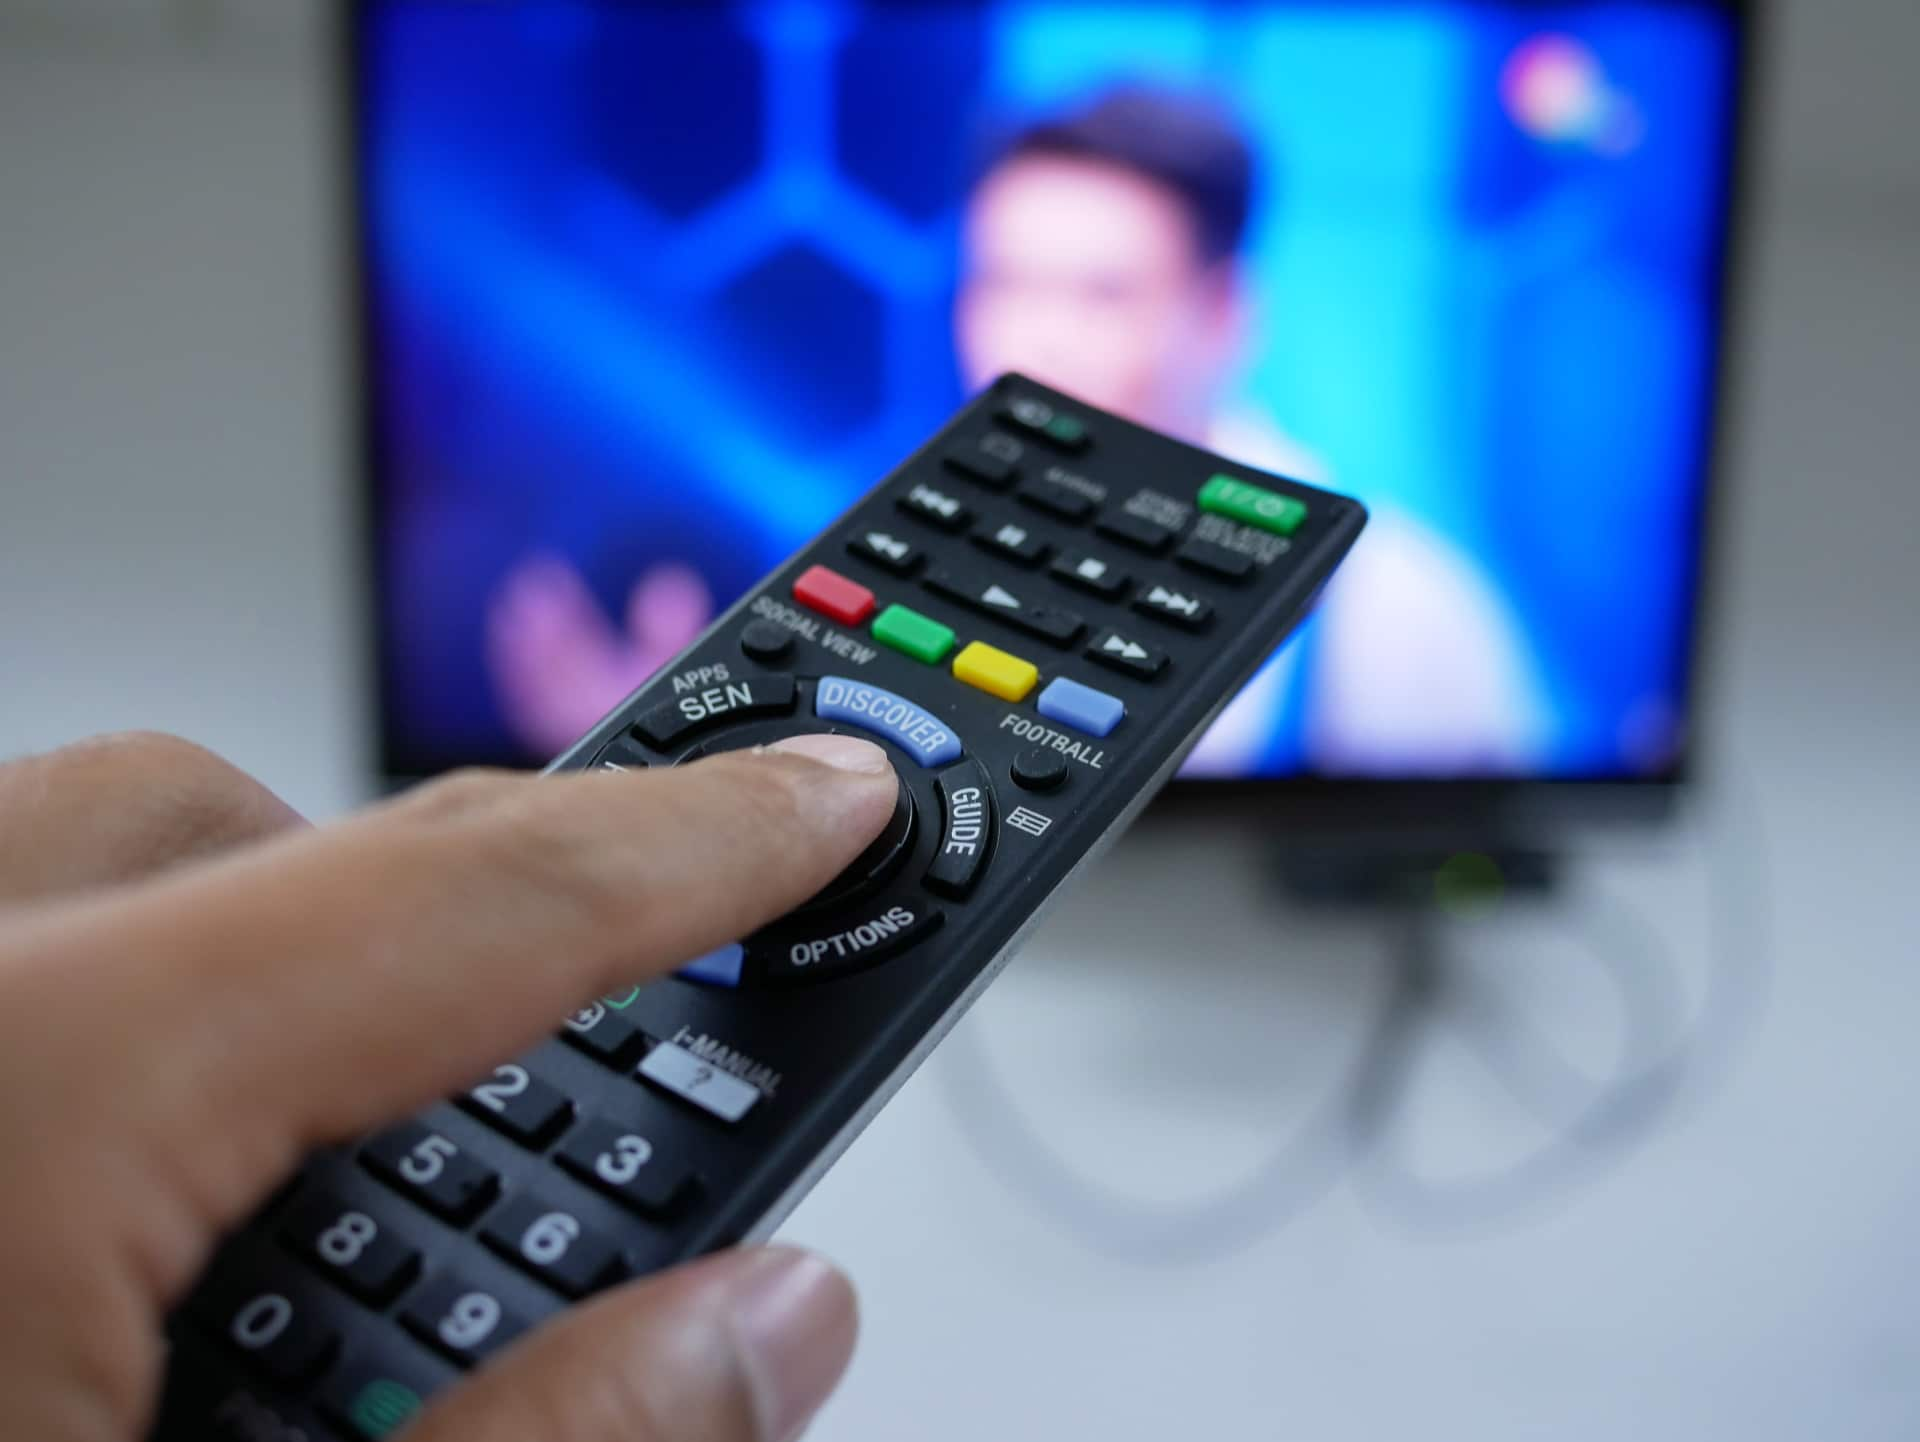 How To Watch Open Tv Channels On Your Pc With Linux Olhar Digital